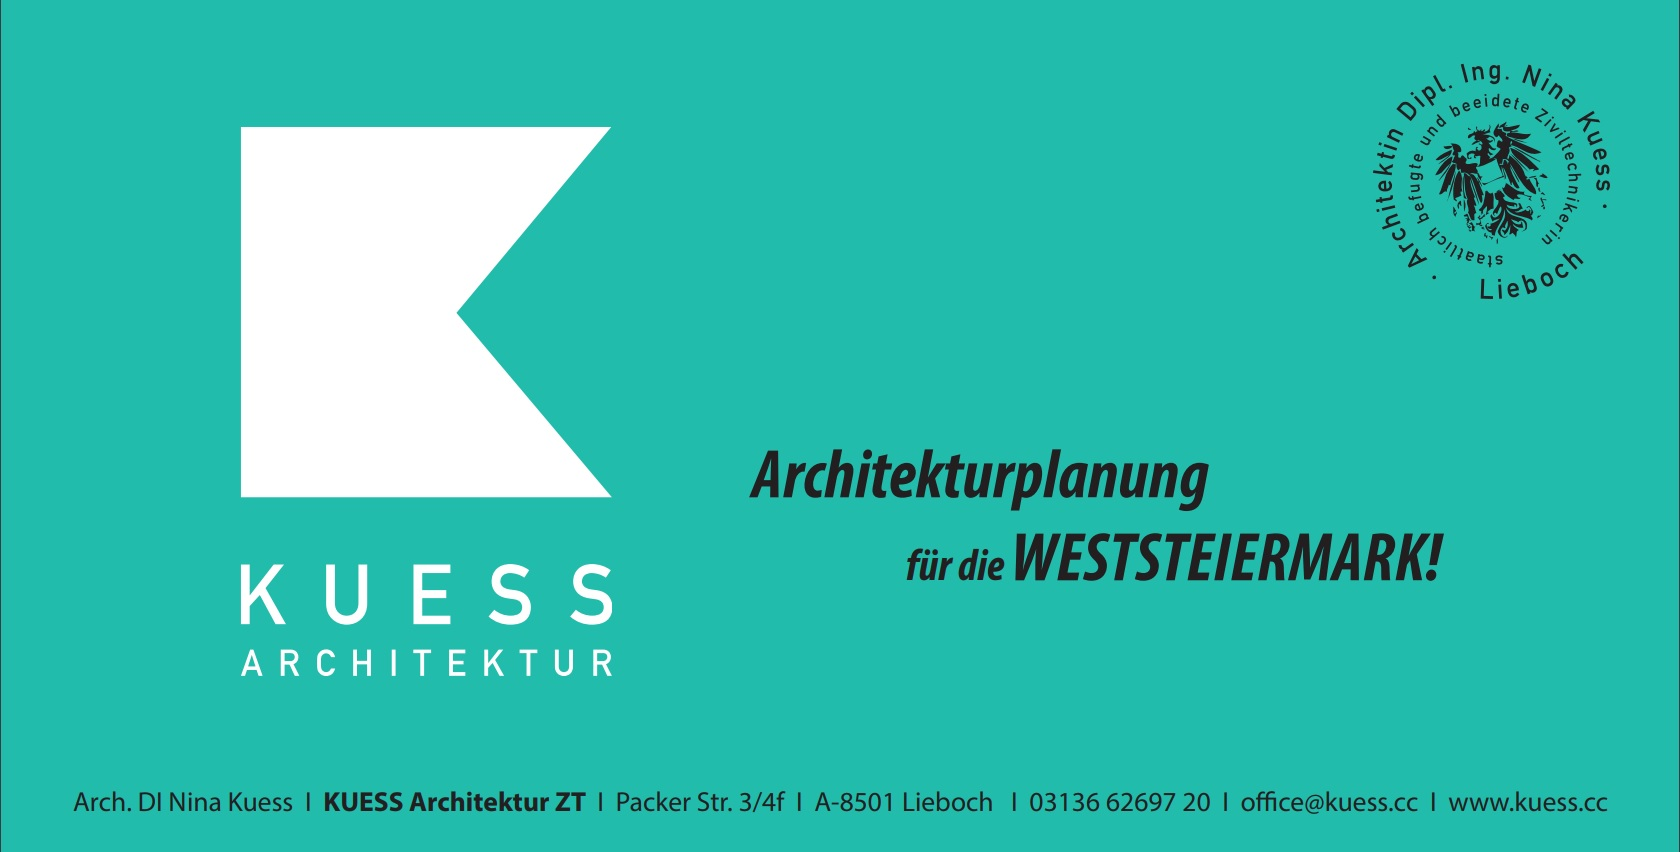 Kuess Architektur